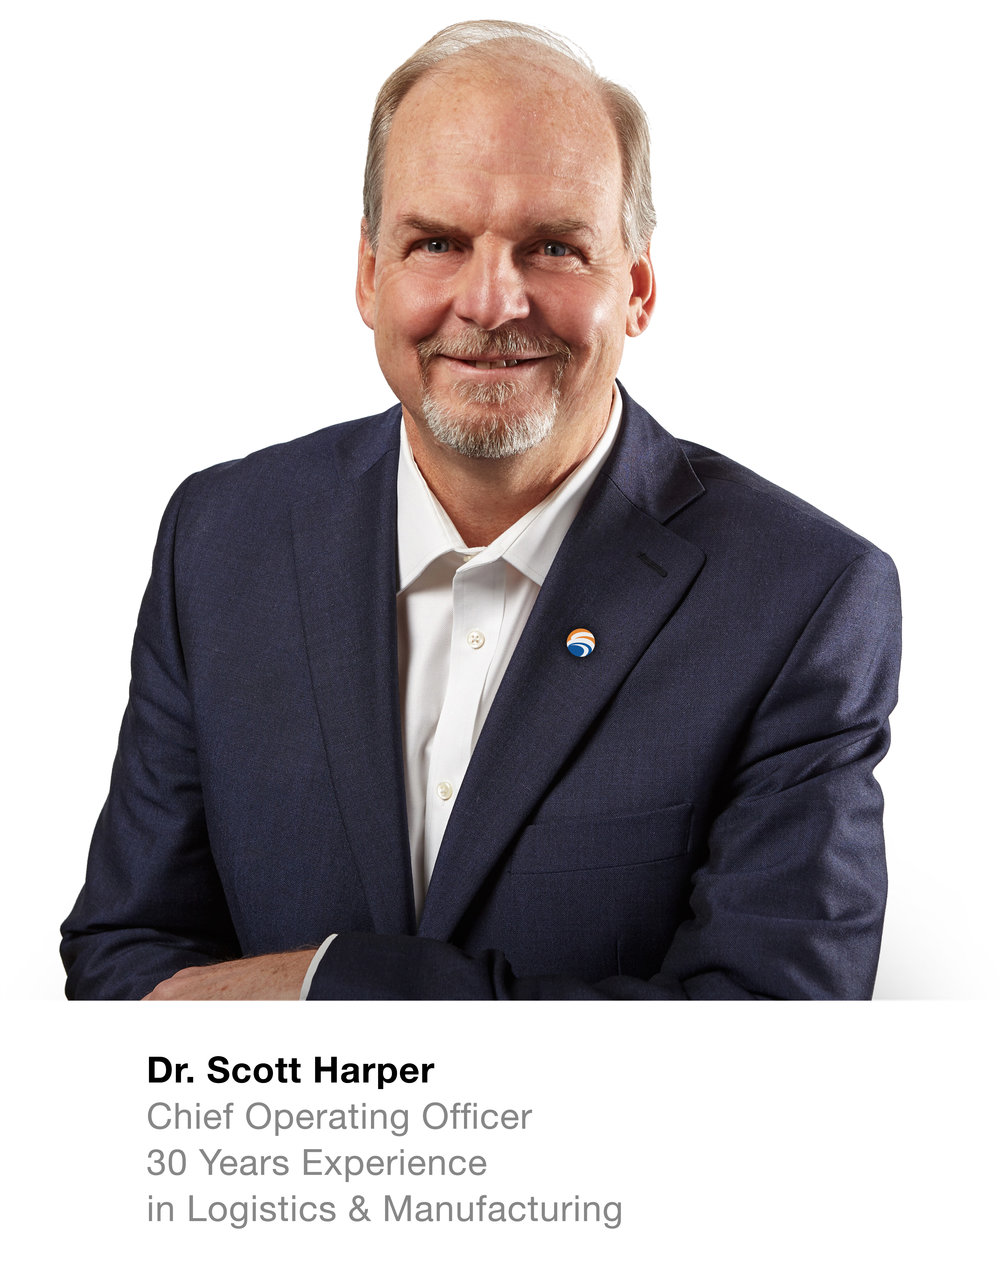 Dr. Scott Harper CEO  30 Years Experience in Logistics & Manufacturing